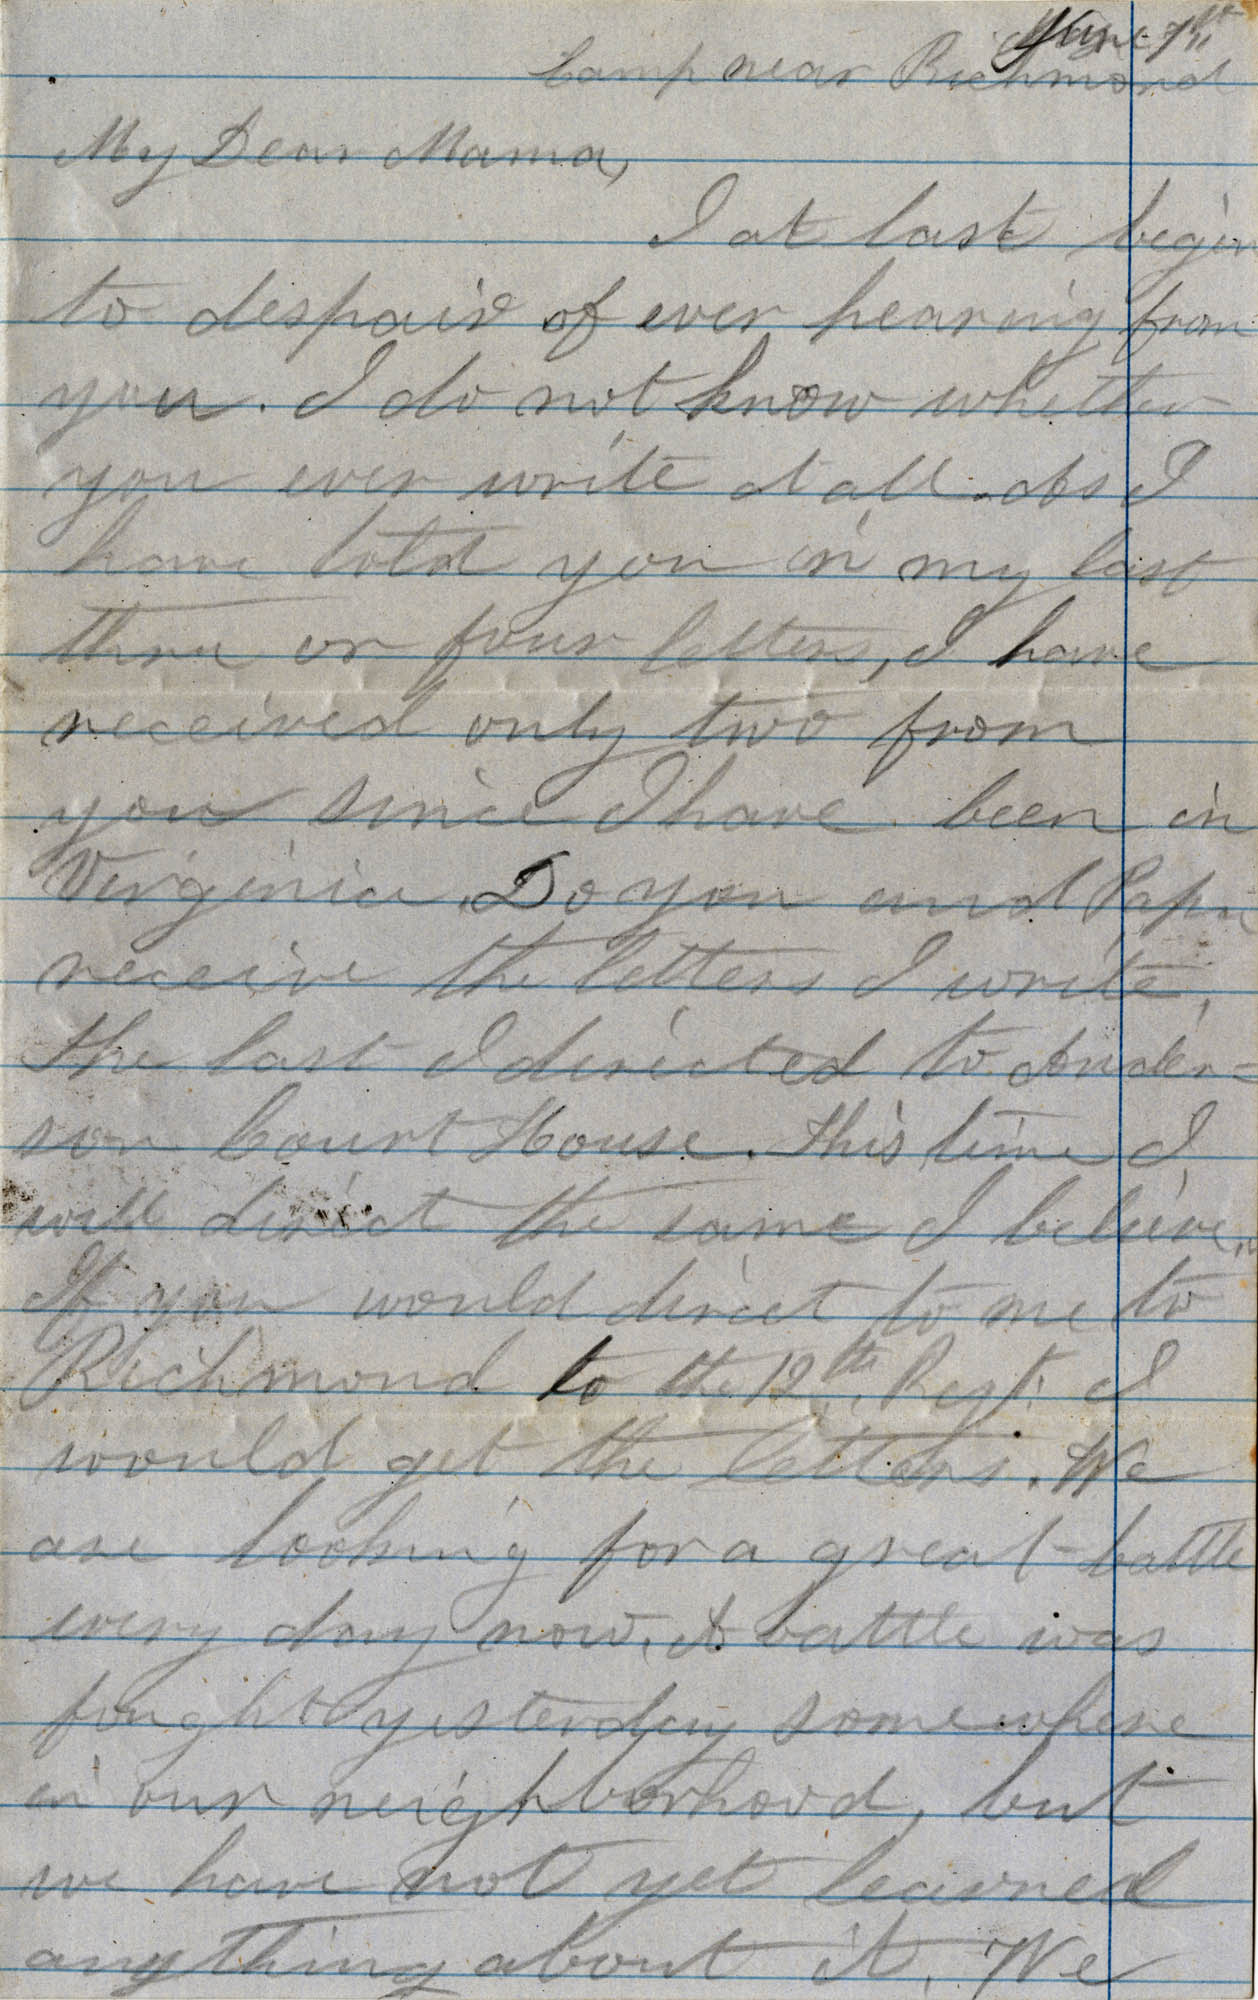 055. Willis Keith to Anna Bella Keith -- June 1, 1862?.